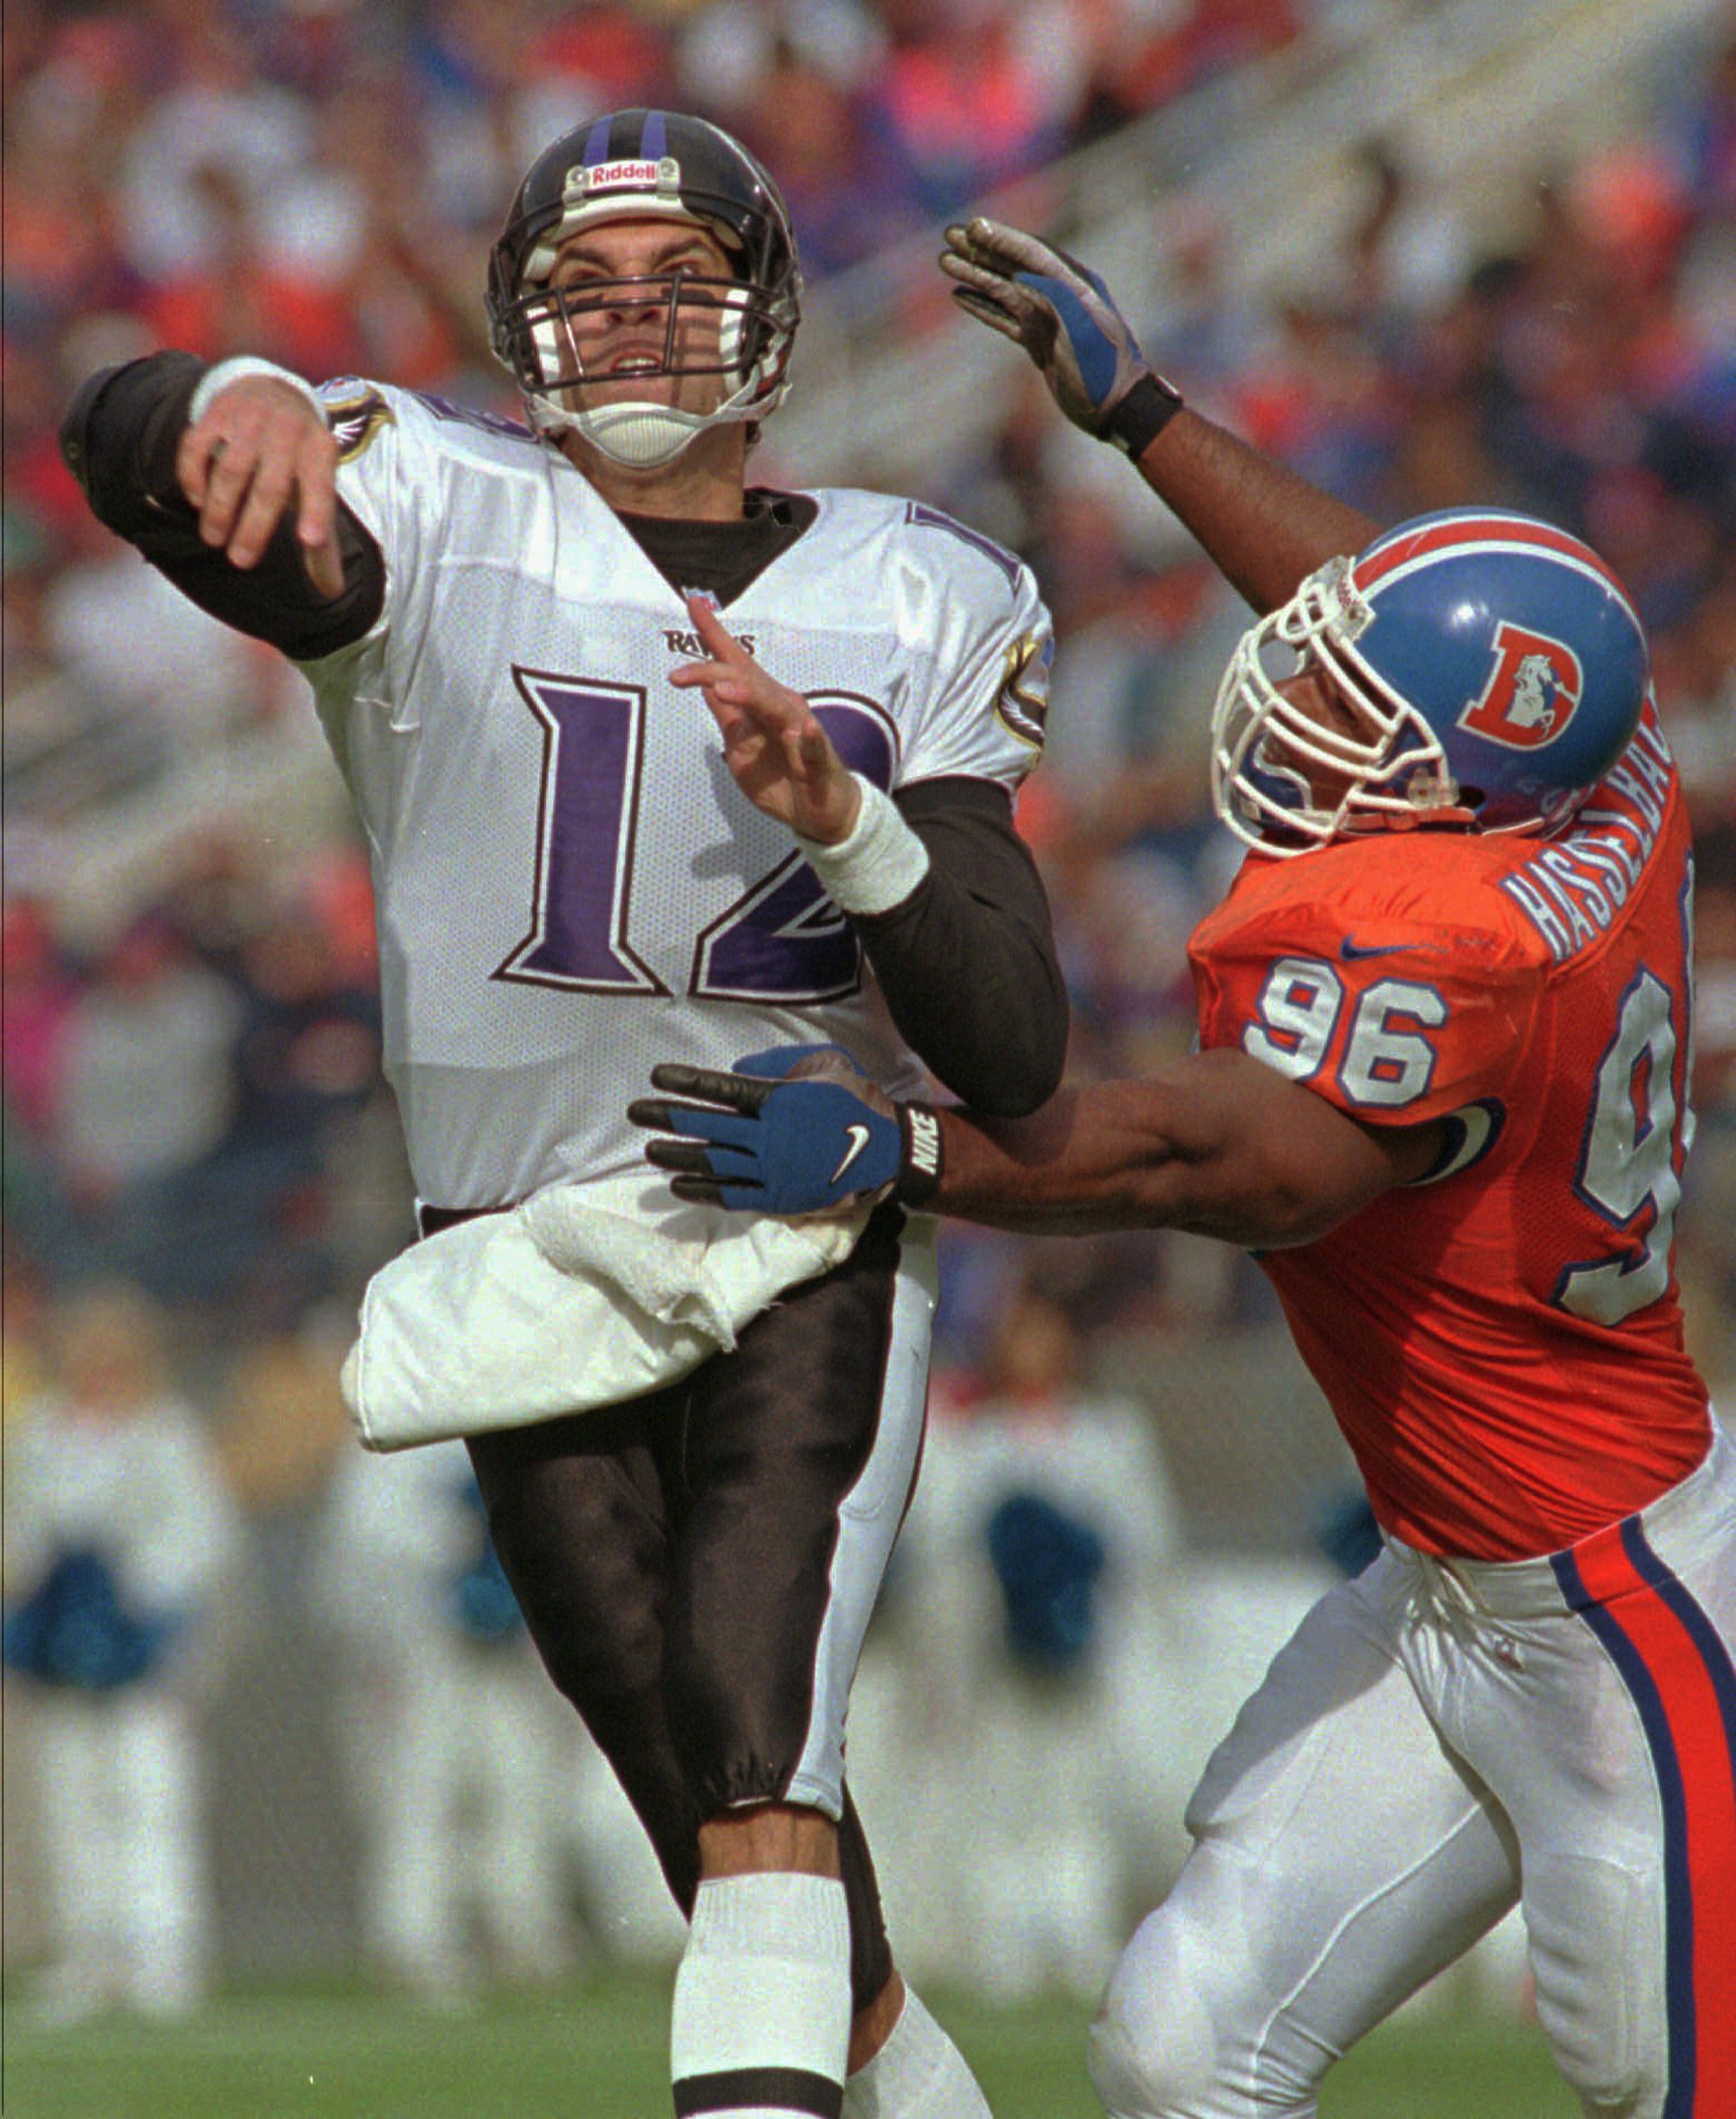 FILE - In this Oct. 20, 1996, file photo, Denver Broncos defensive end Harold Hasselbach, right, pressures Baltimore Ravens quarterback Vinny Testaverde during an NFL football game in Denver. Hasselbach's son Terran is a hybrid linebacker at Colorado. The